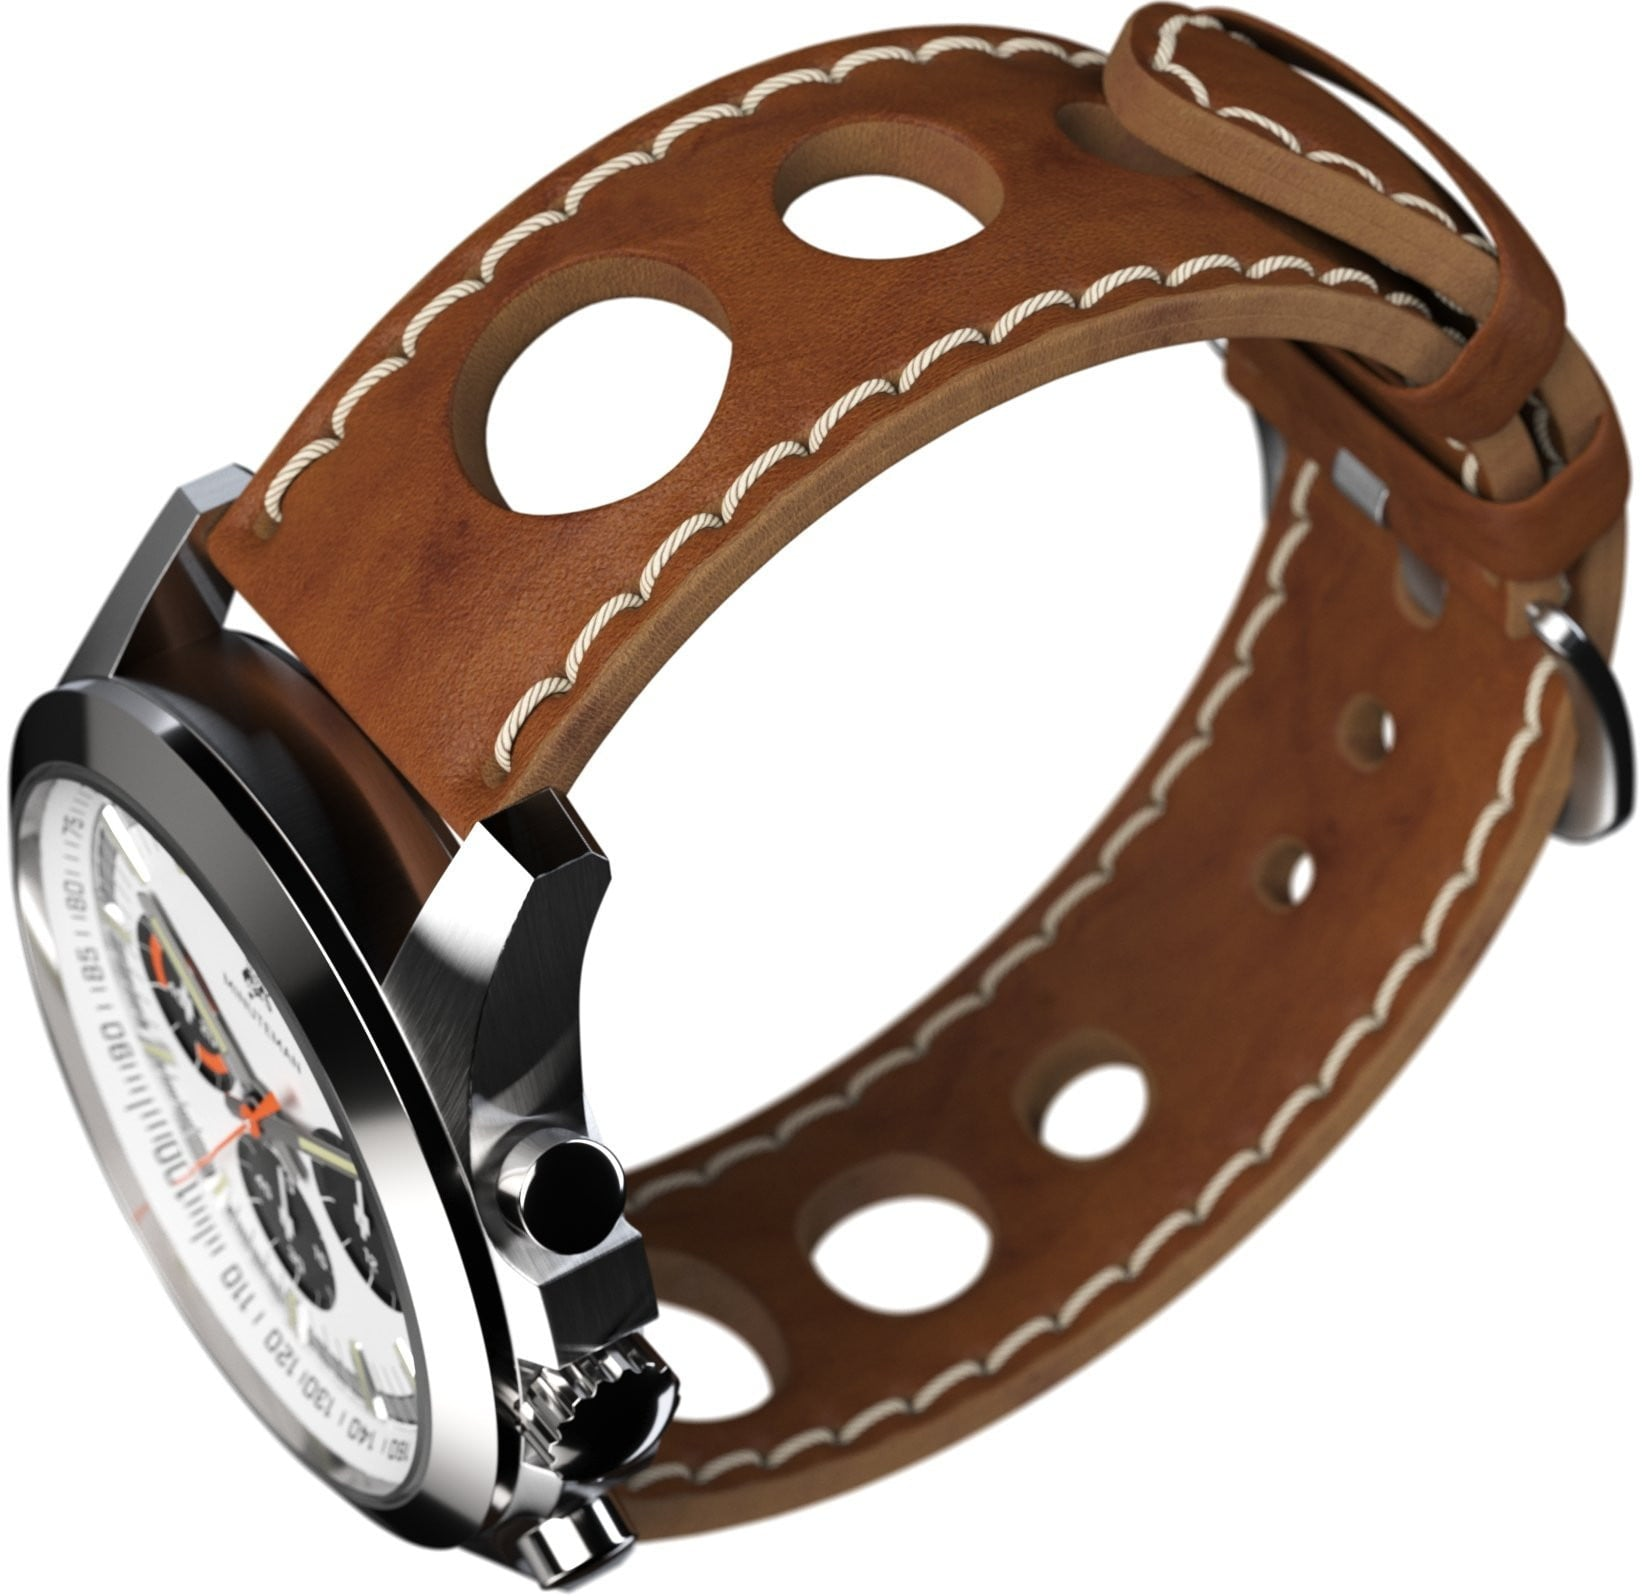 Minuteman Parker Chronograph Panda Dial Wristwatch Brushed (Pre Order) - The CGA Company